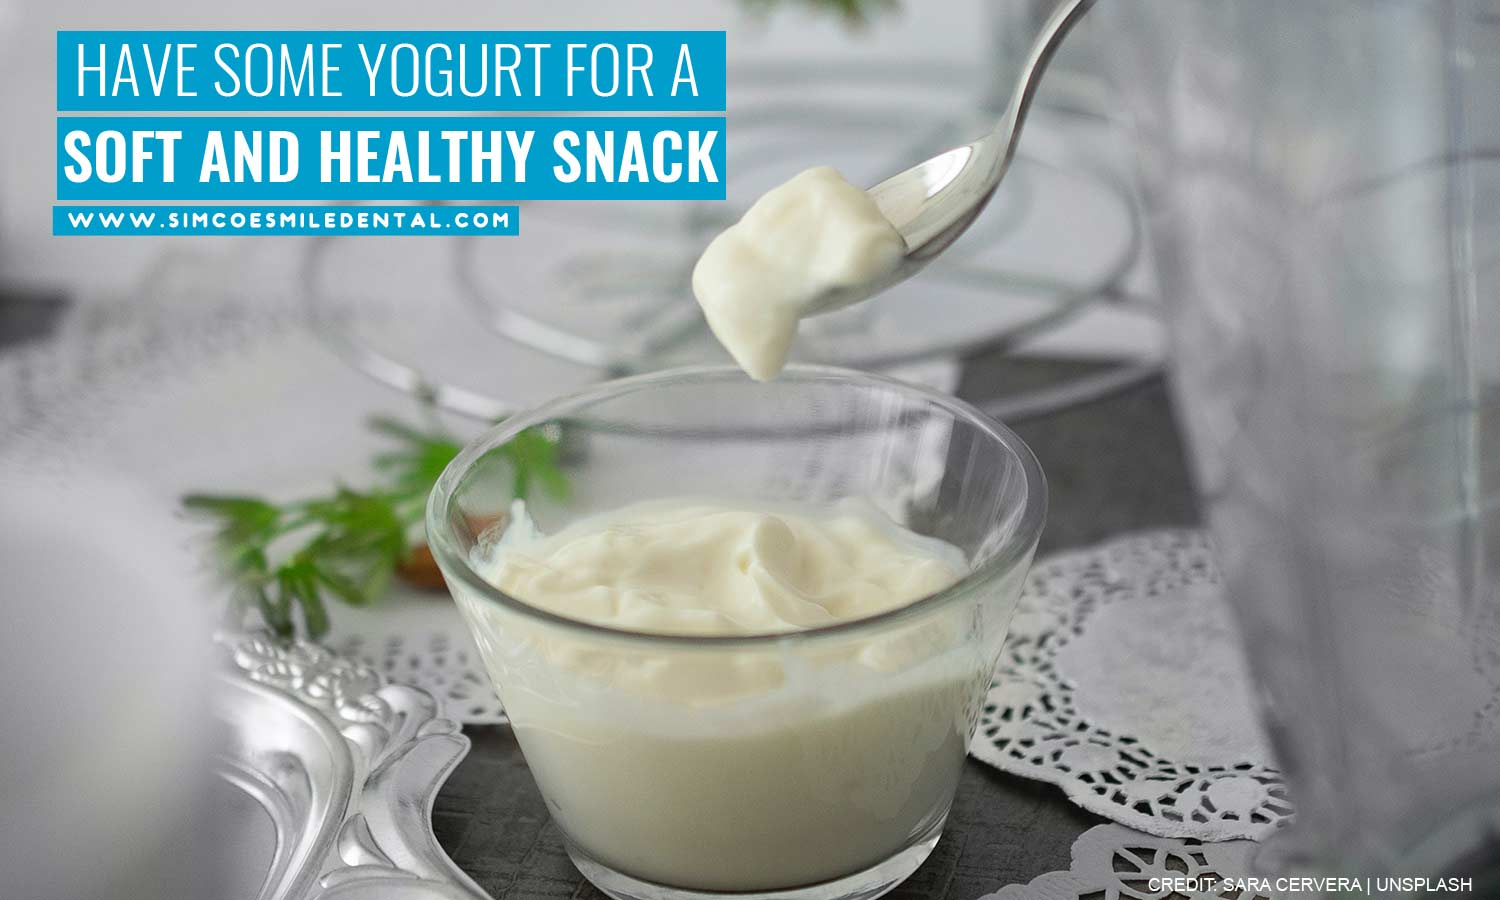 Have-some-yogurt-for-a-soft-and-healthy-snack 9 Easiest Foods for New Braces